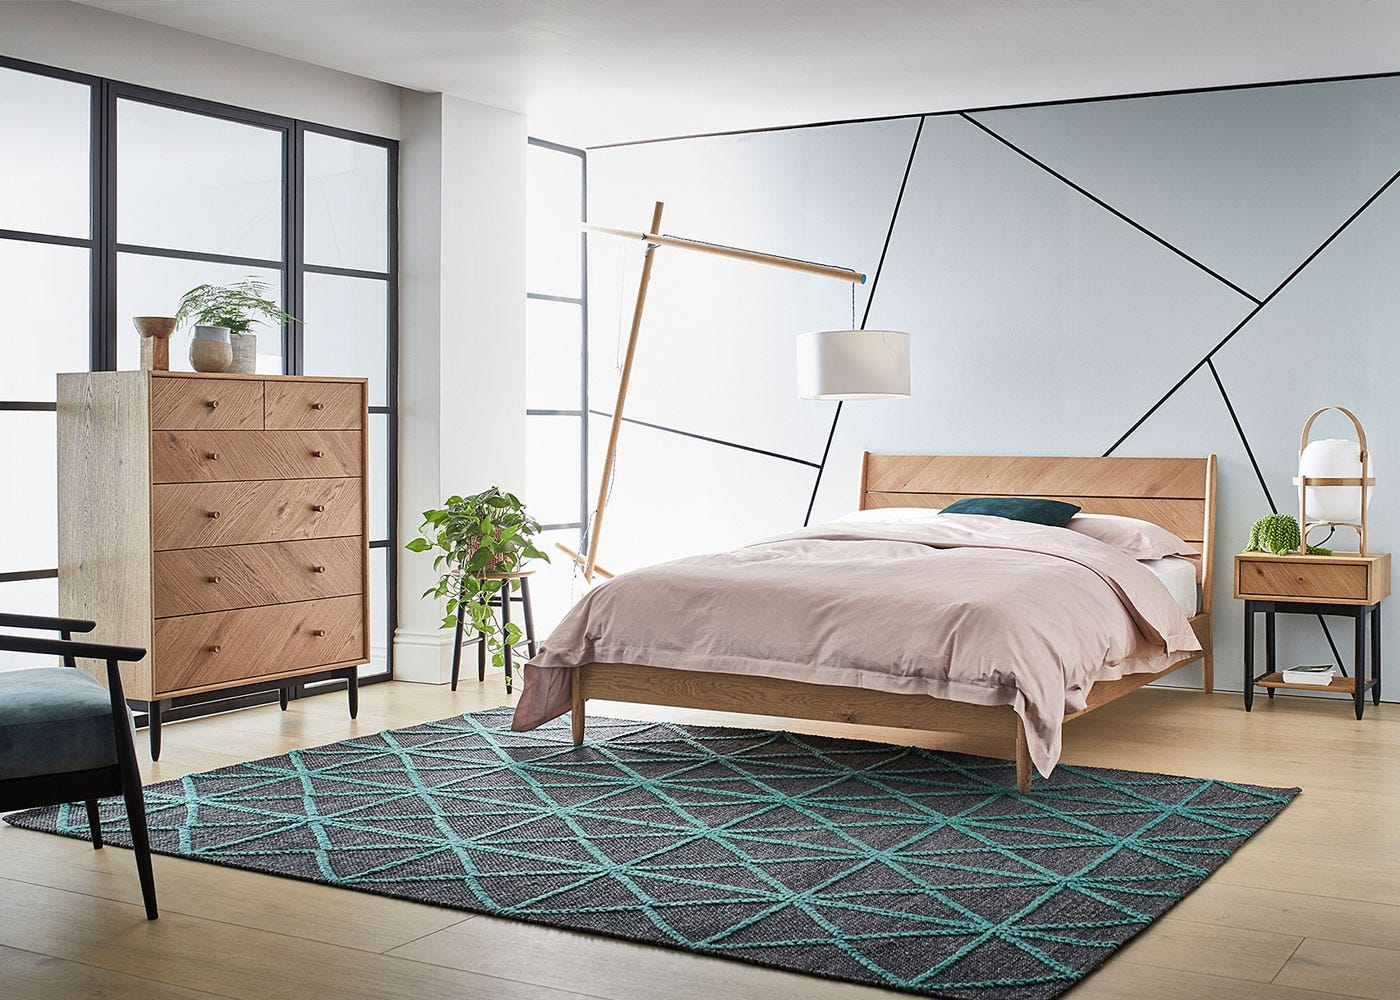 As Shown: Monza bedroom collection